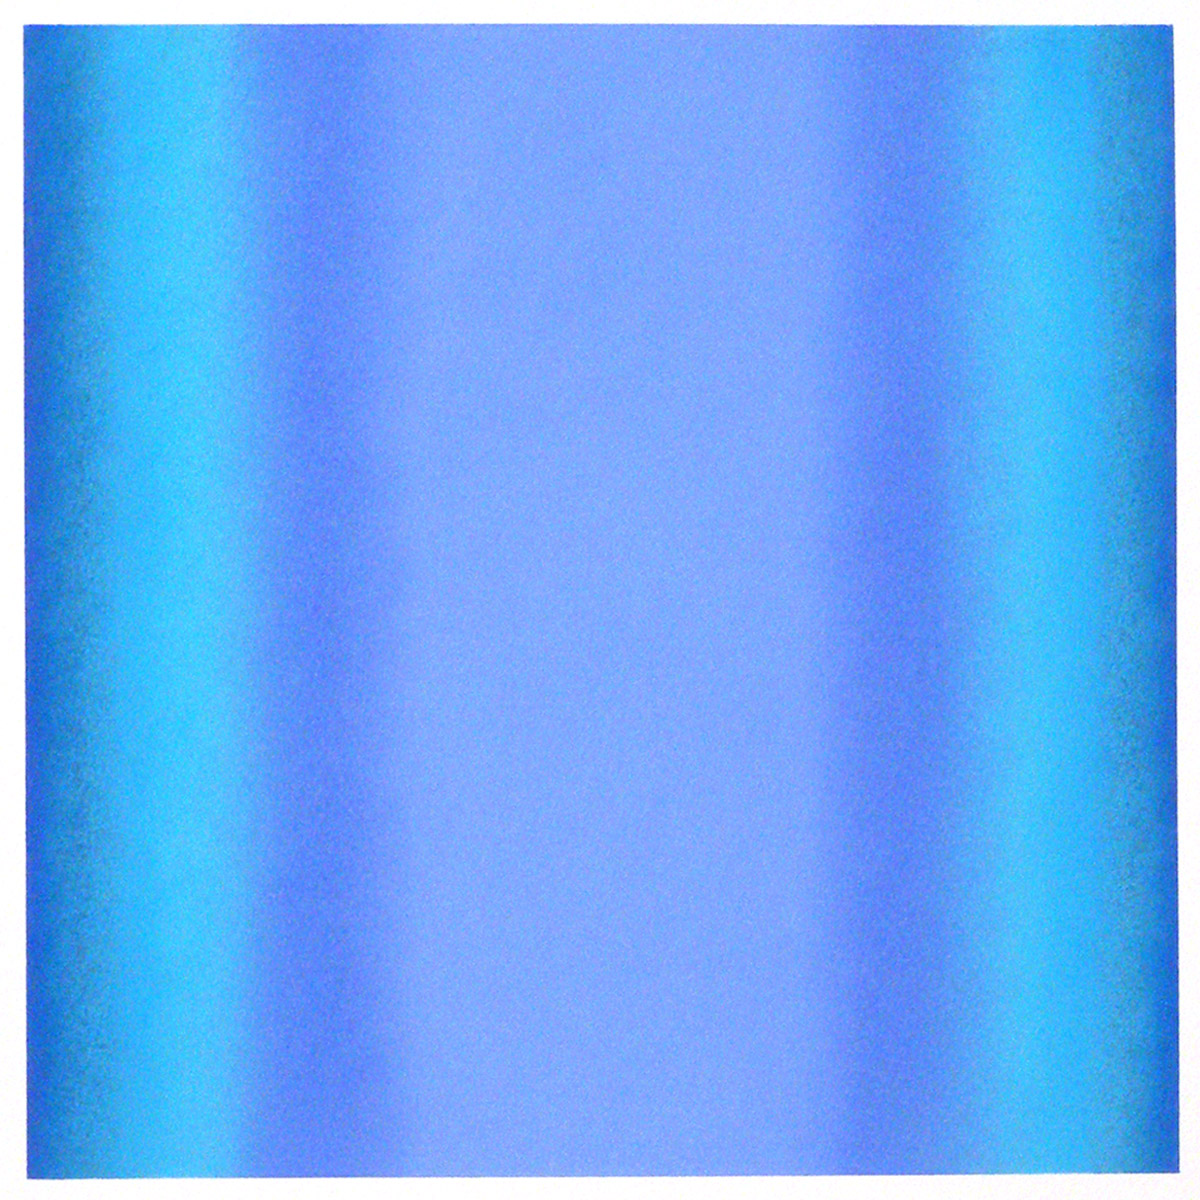 Cool-Light Ultramarine-Cobalt, Warm-Light Cool-Light Series, 2012, pastel on paper, image: 14 x 14 in. (36 x 36 cm.), sheet: 30 x 22 in. (76 x 56 cm.)